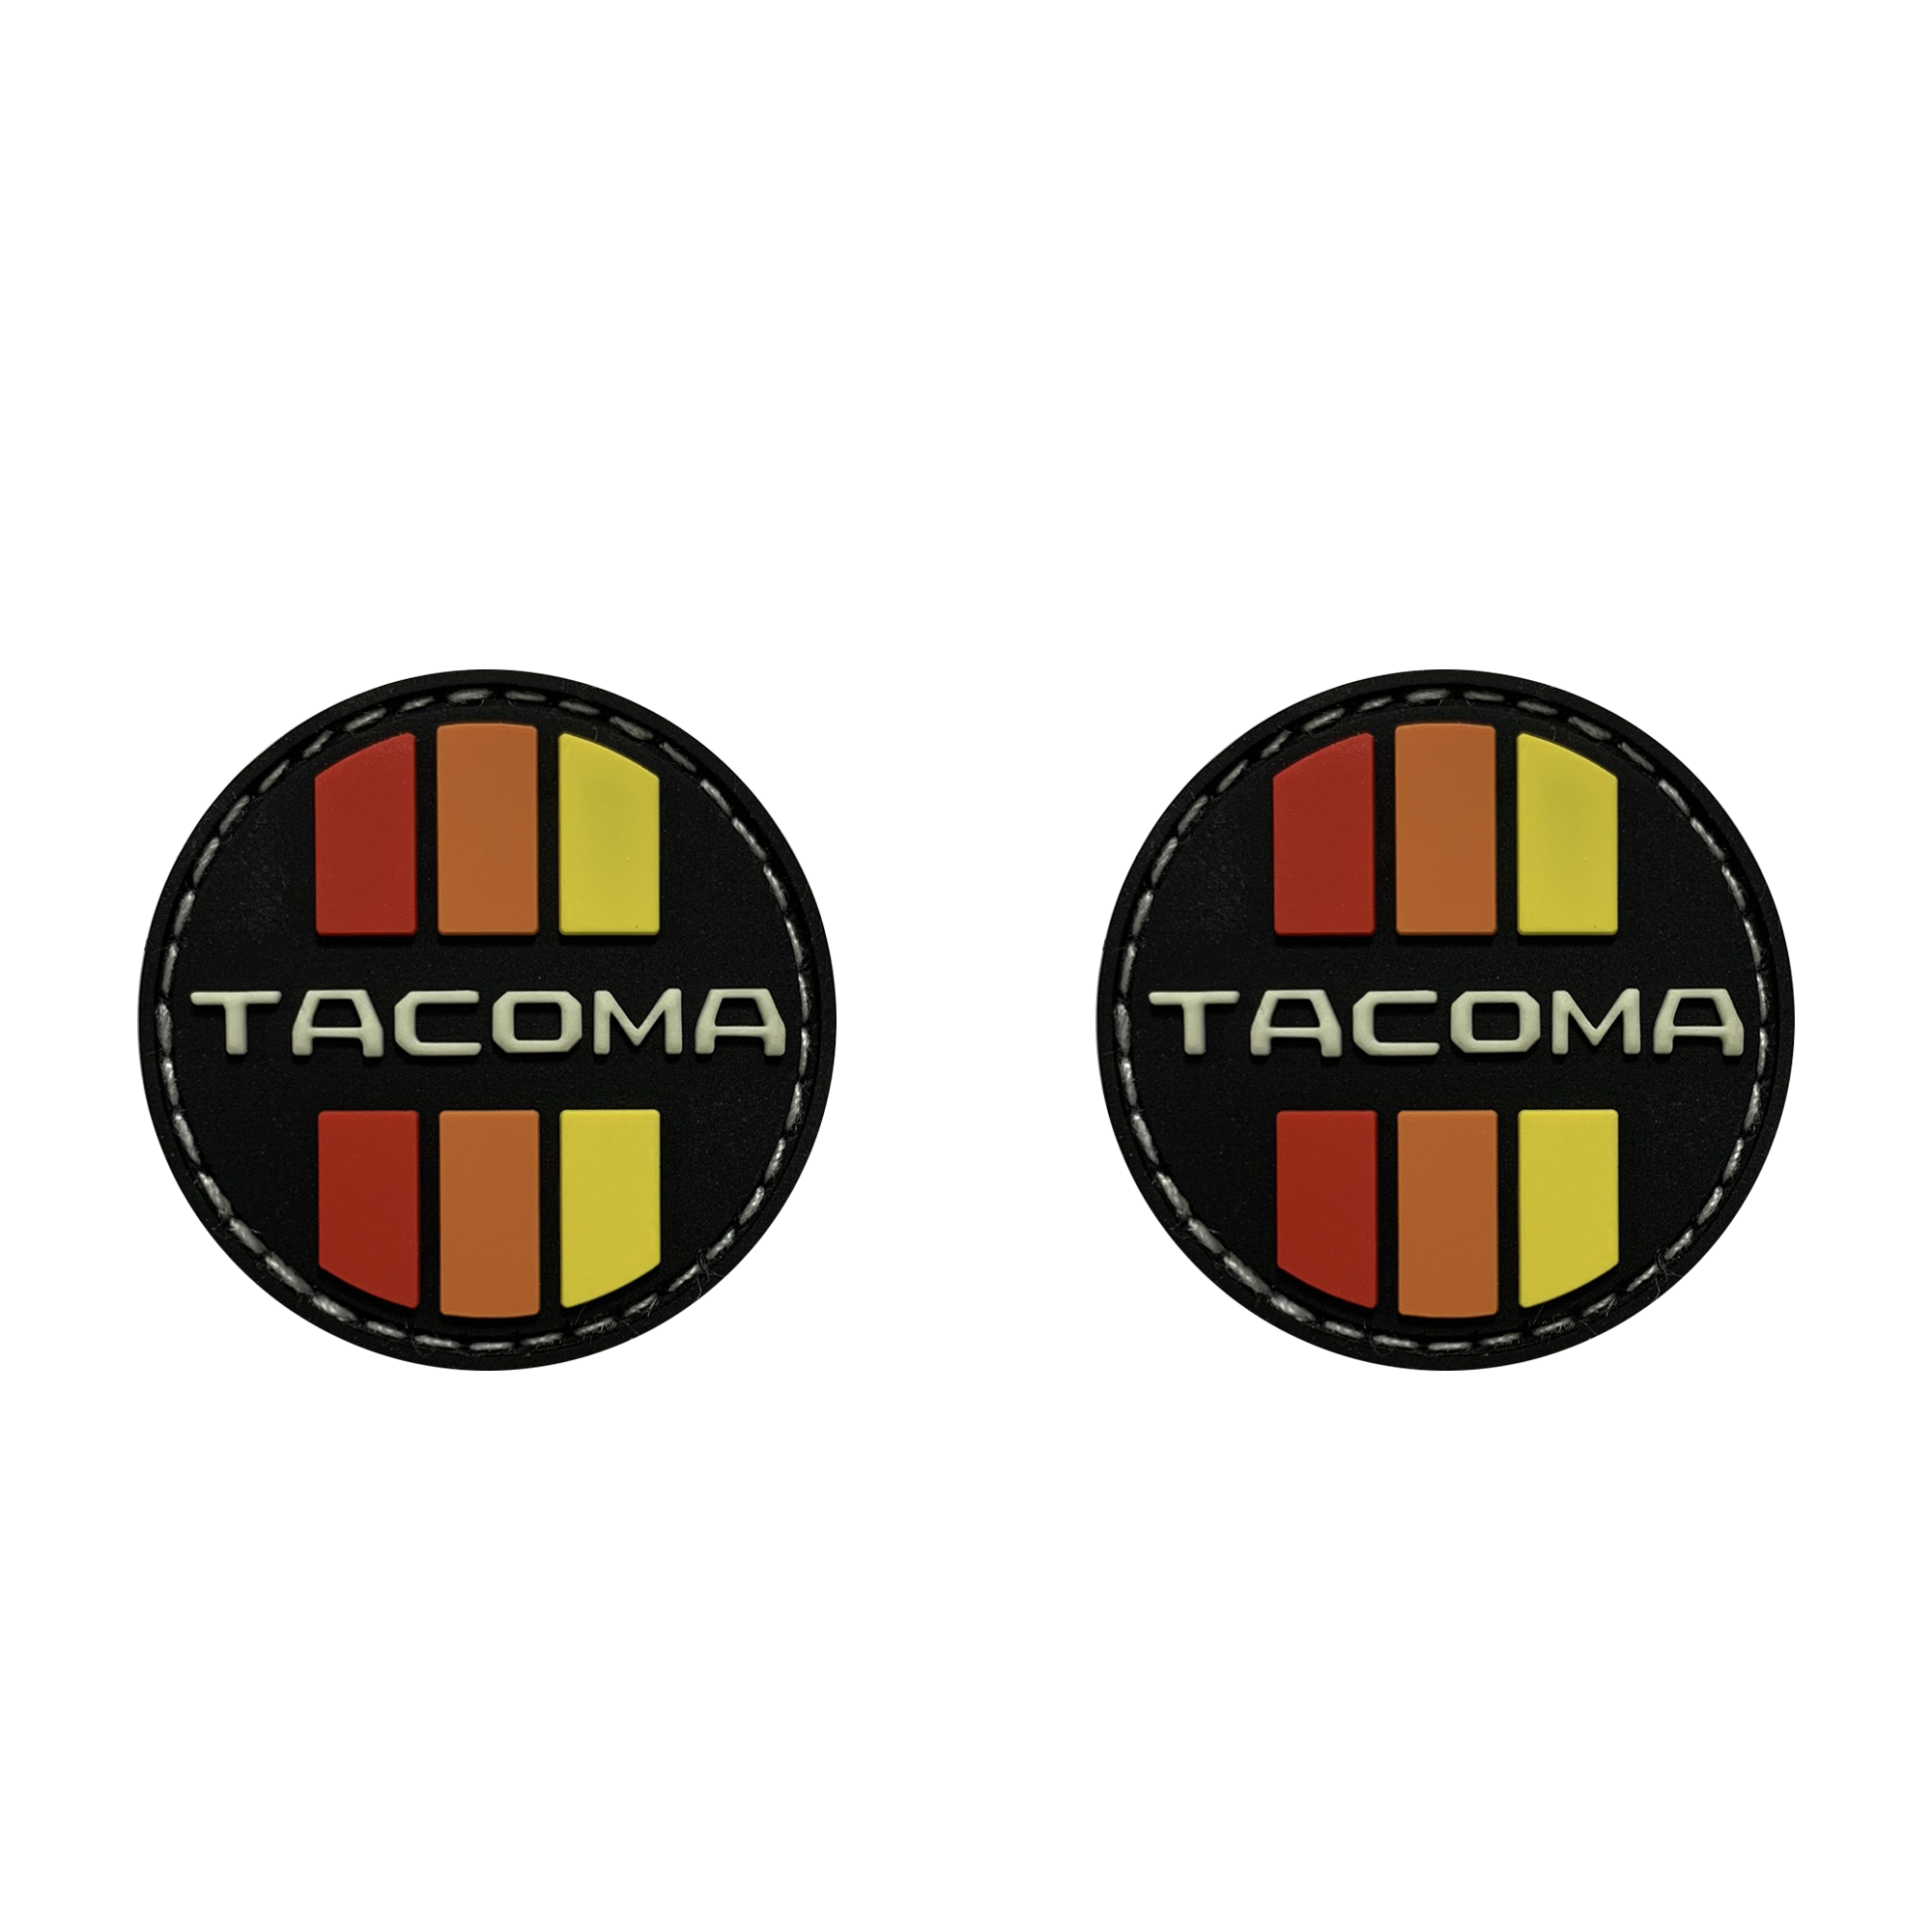 Tacoma Retro Circle Ranger Eye Patches